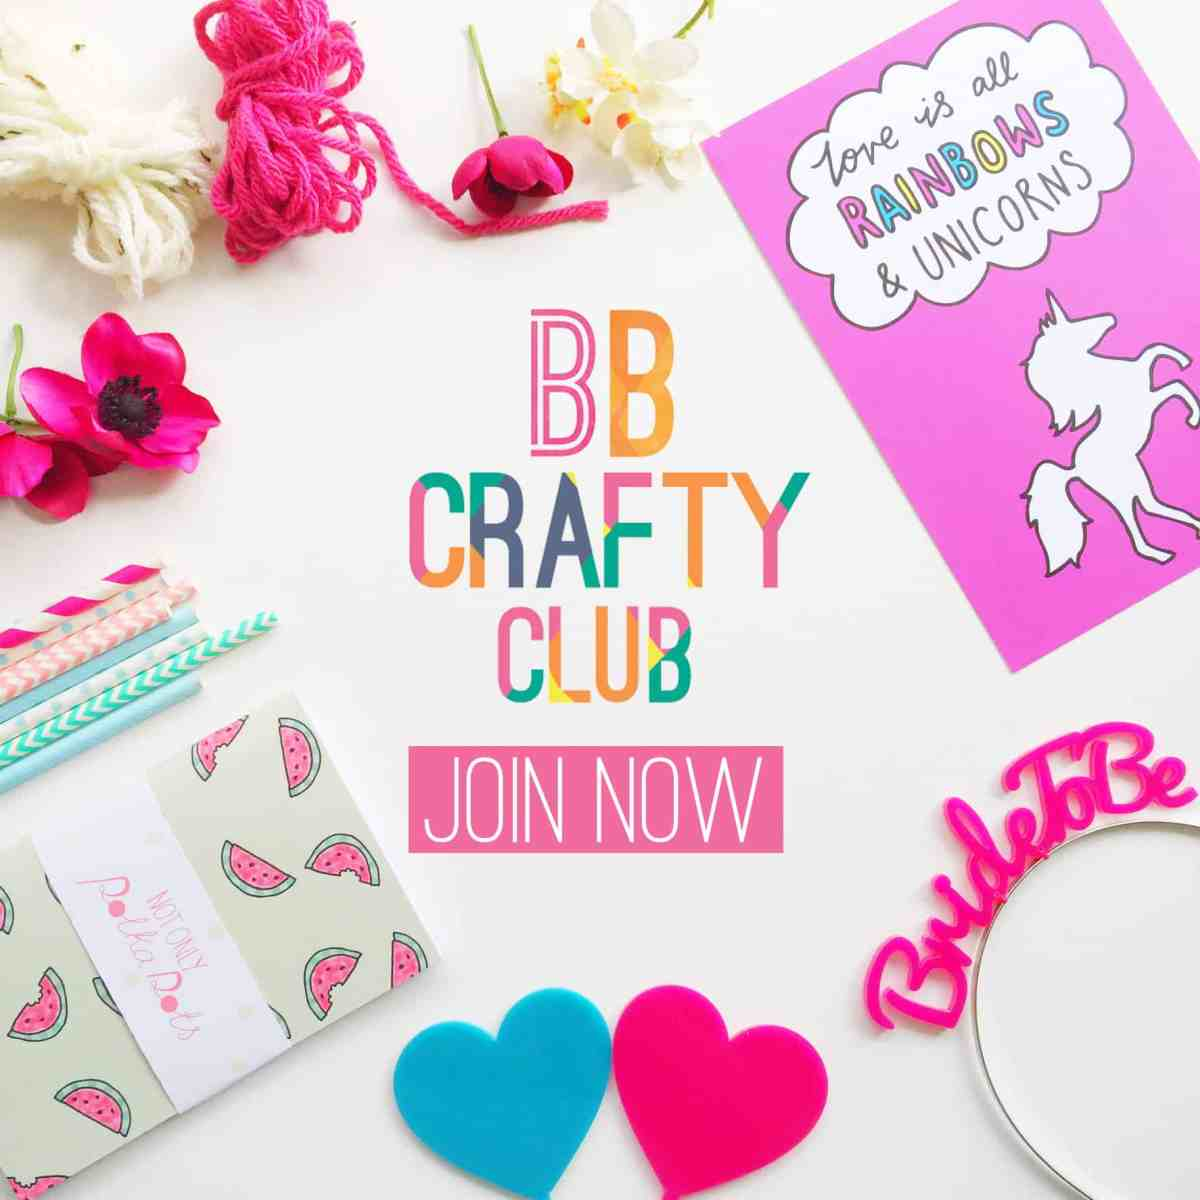 BB Crafty Club Join Now